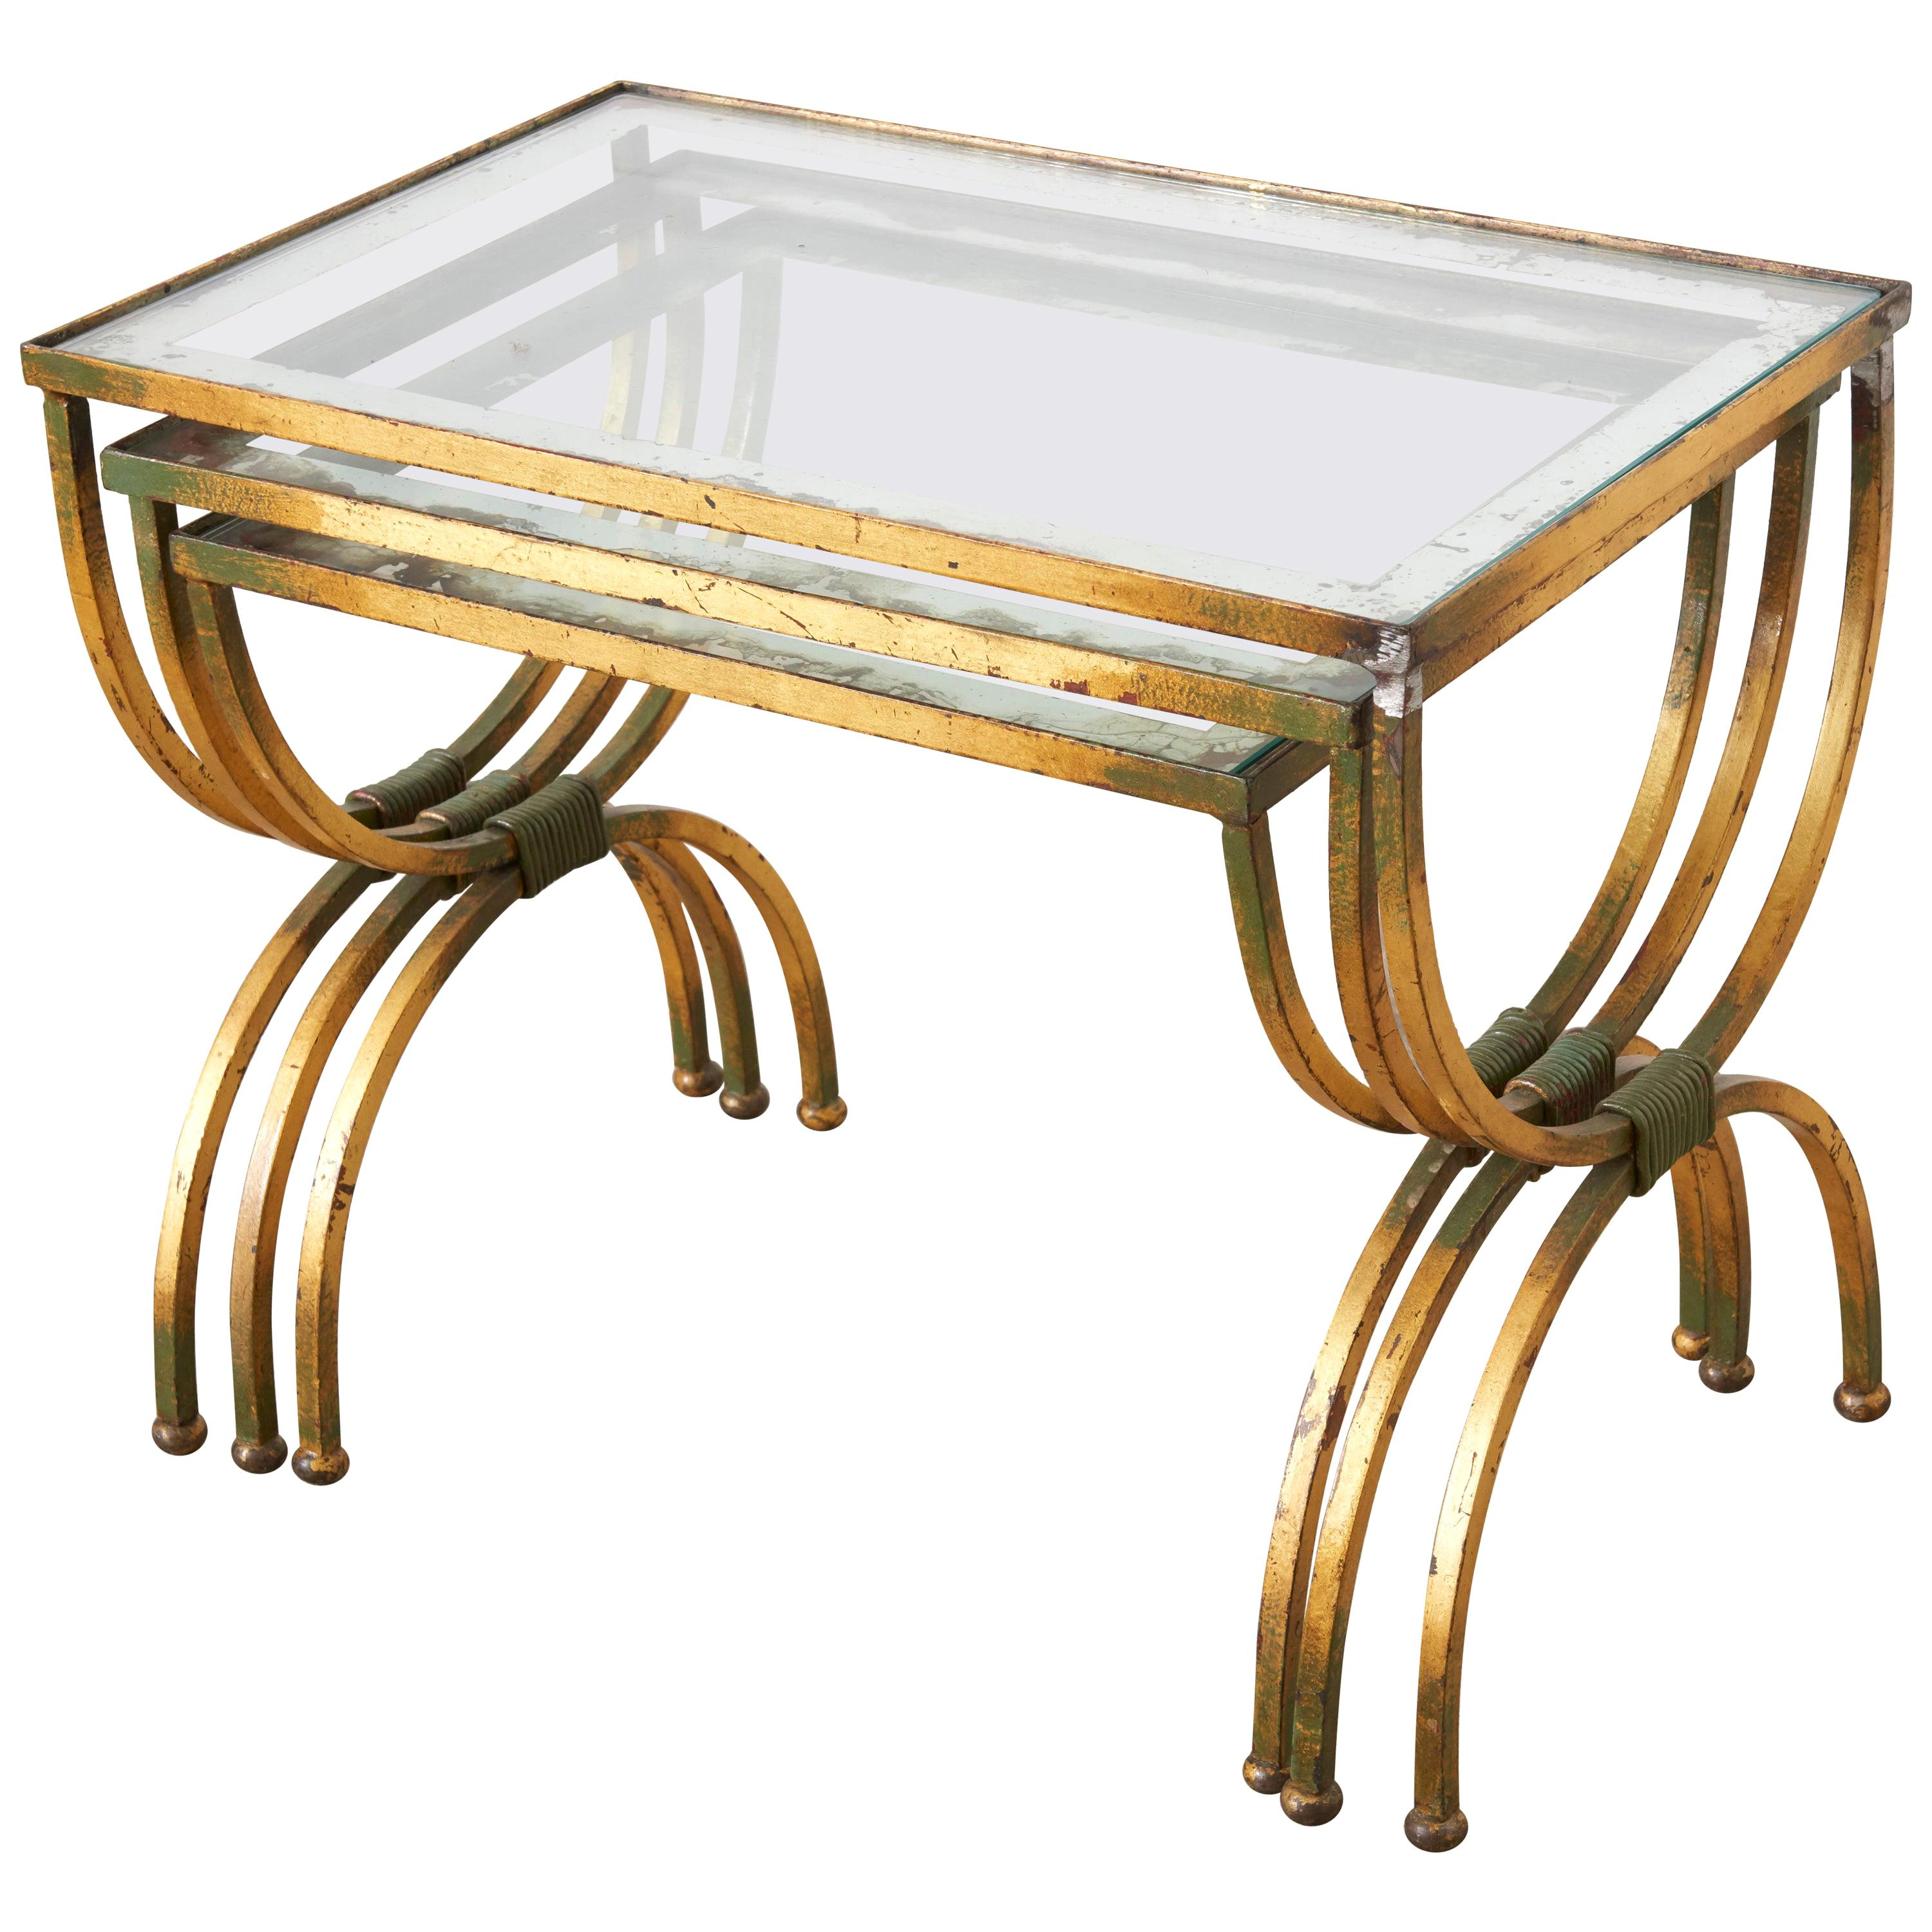 Neoclassical Nesting Tables, France, 1950s